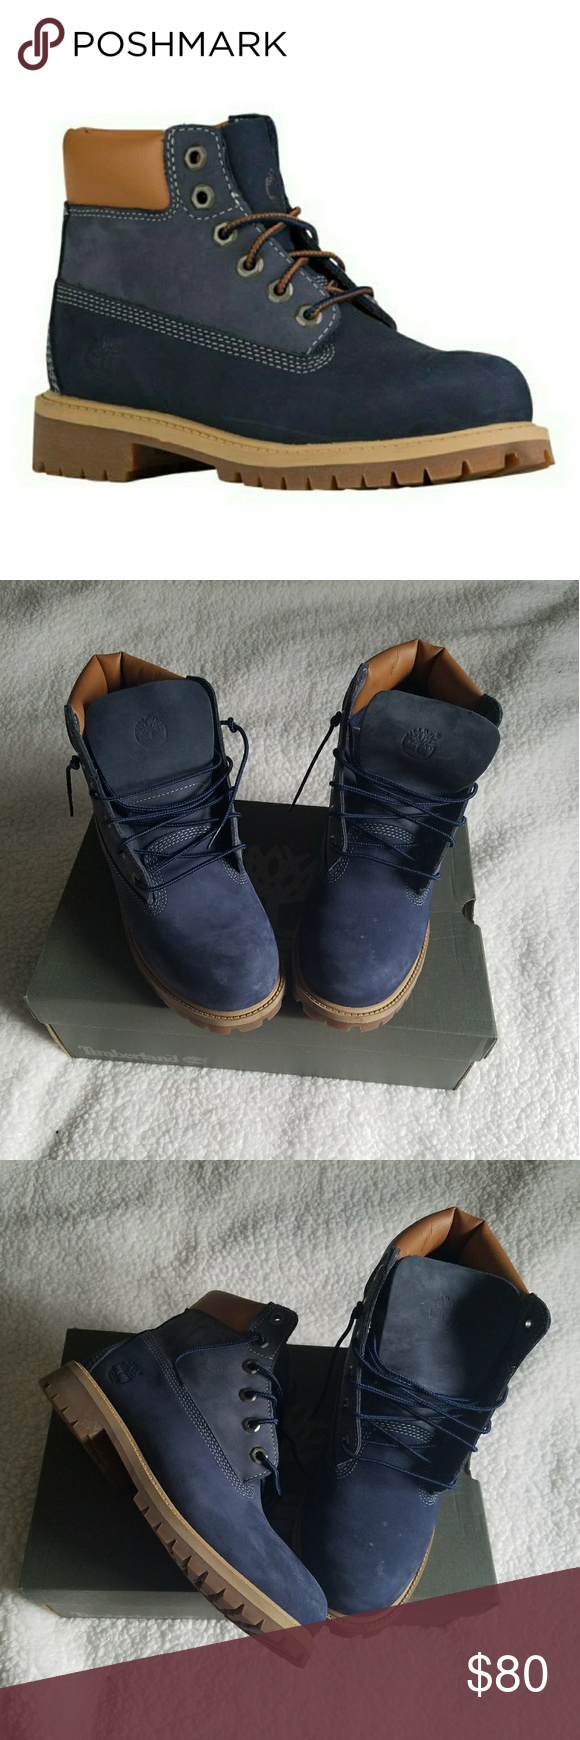 Timberland Boots Big kid size 6.5 which is equivalent to a women's size 8  or 8.5